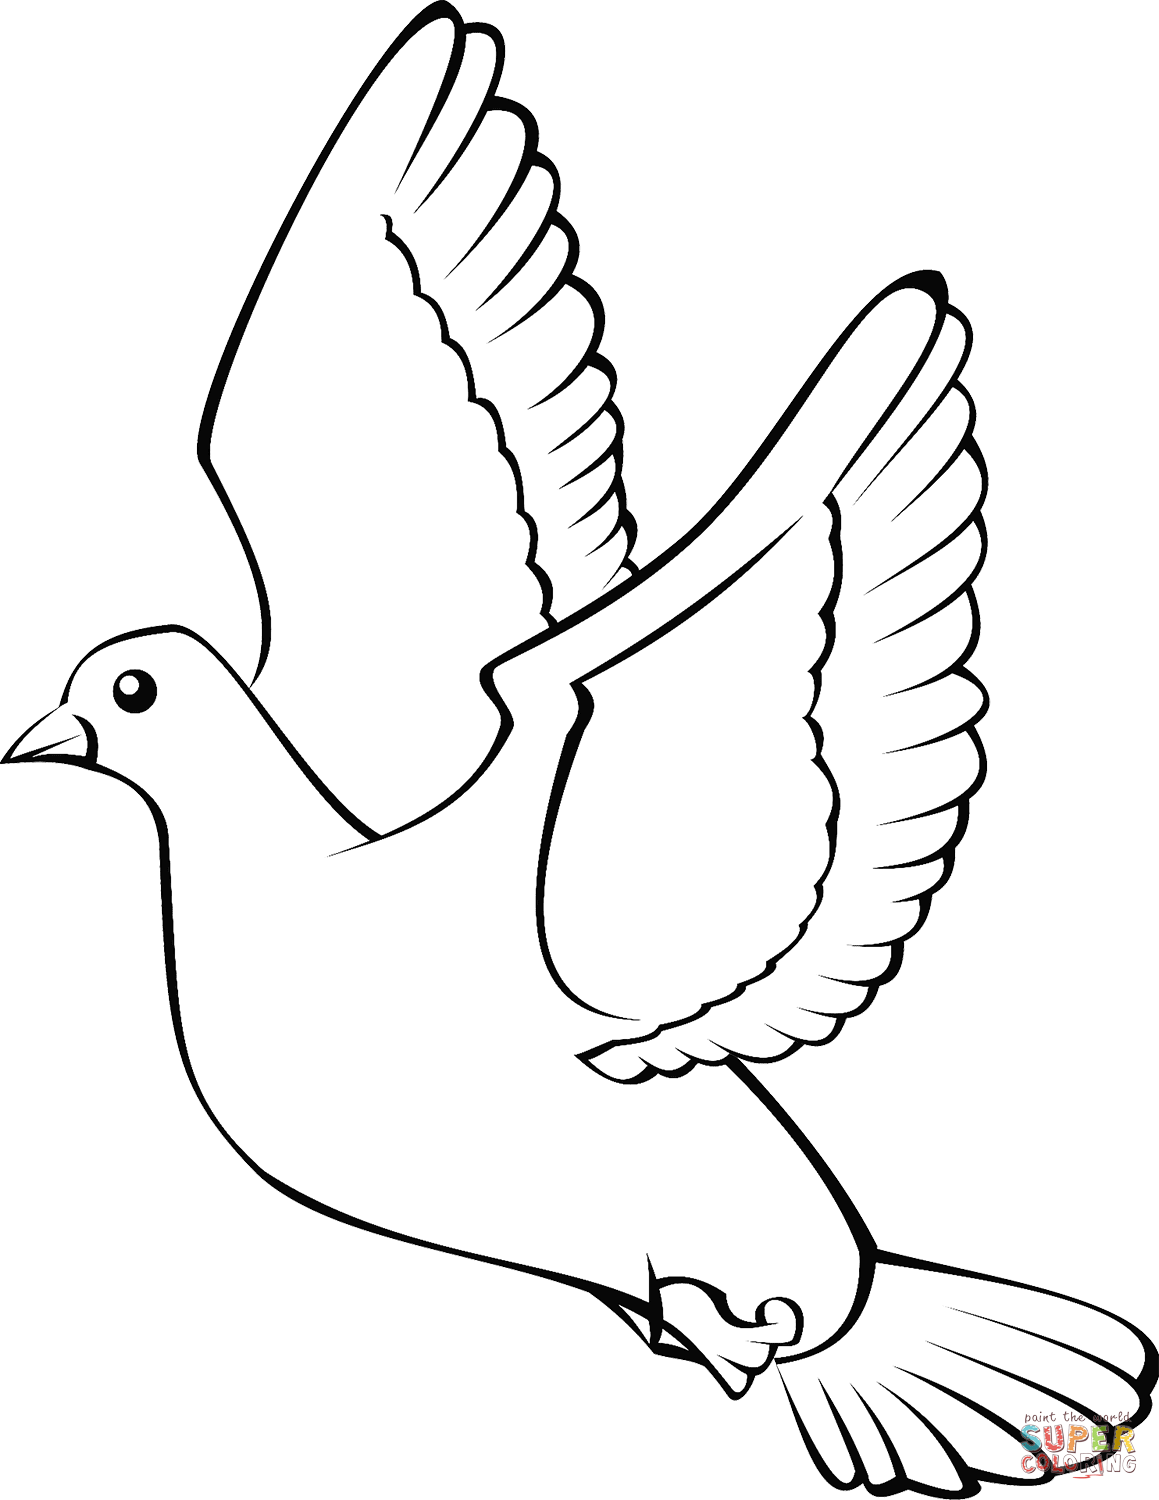 pictures of doves to color dove coloring pages best coloring pages for kids color doves to pictures of